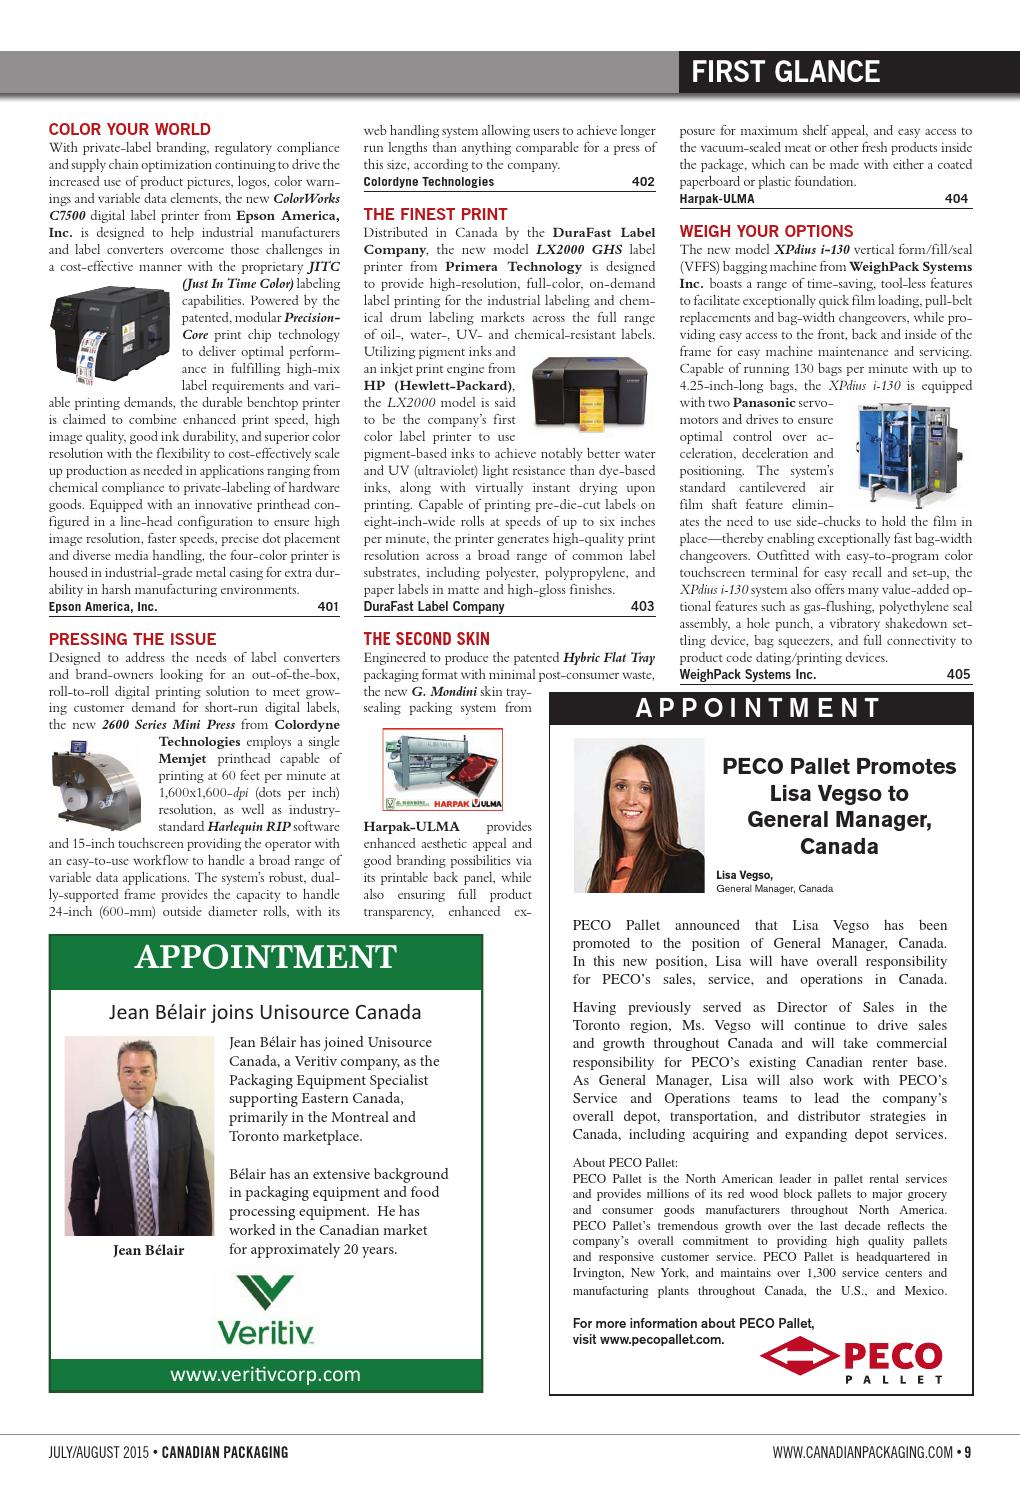 Canadian Packaging July/August 2015 by Annex Business Media